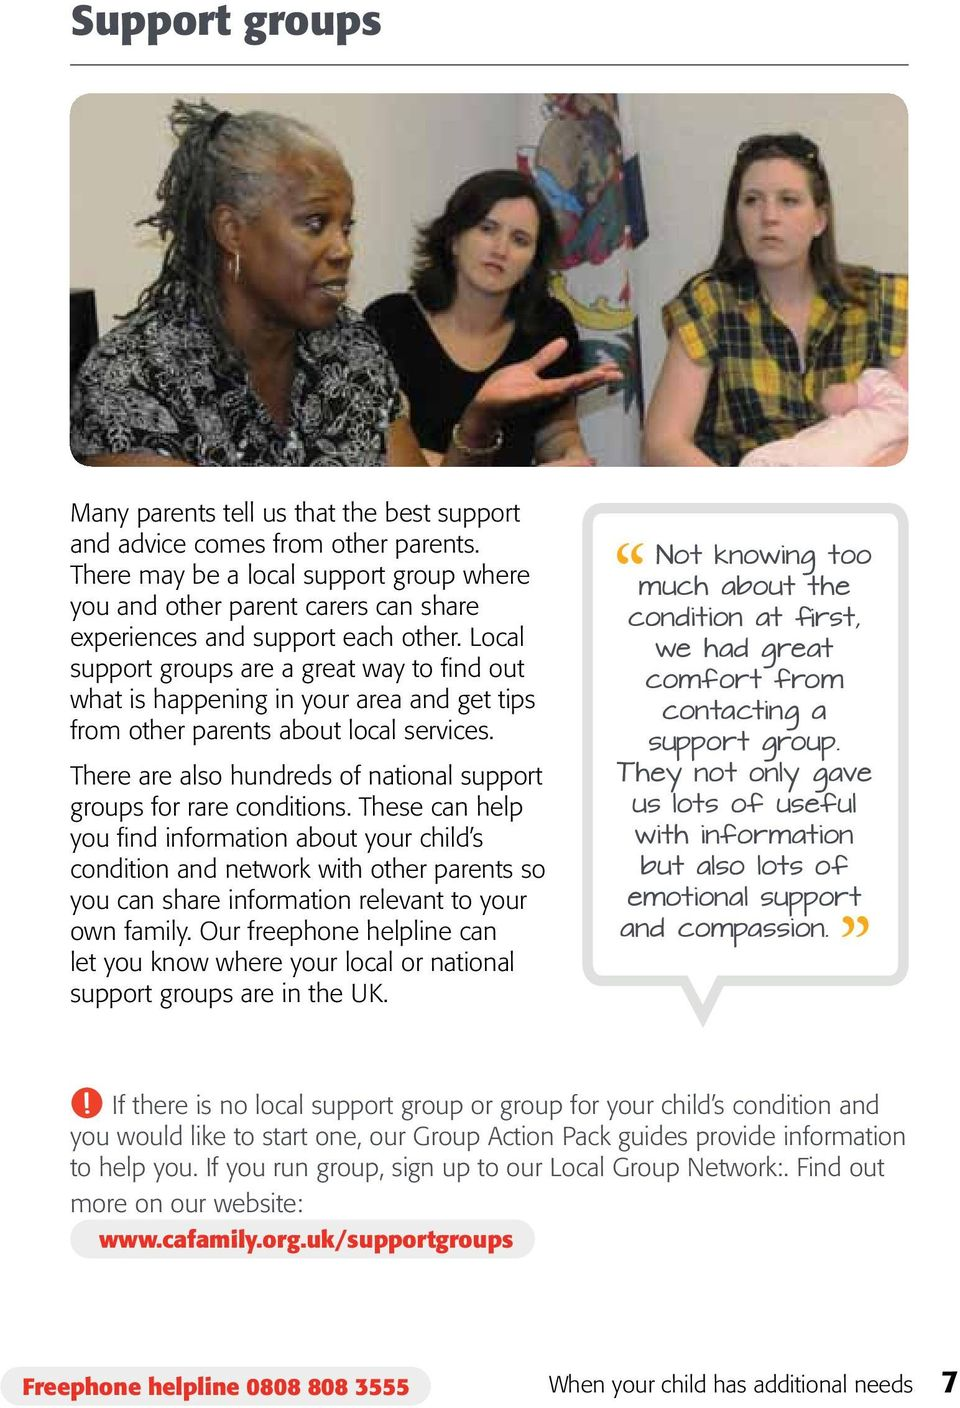 Local support groups are a great way to find out what is happening in your area and get tips from other parents about local services.